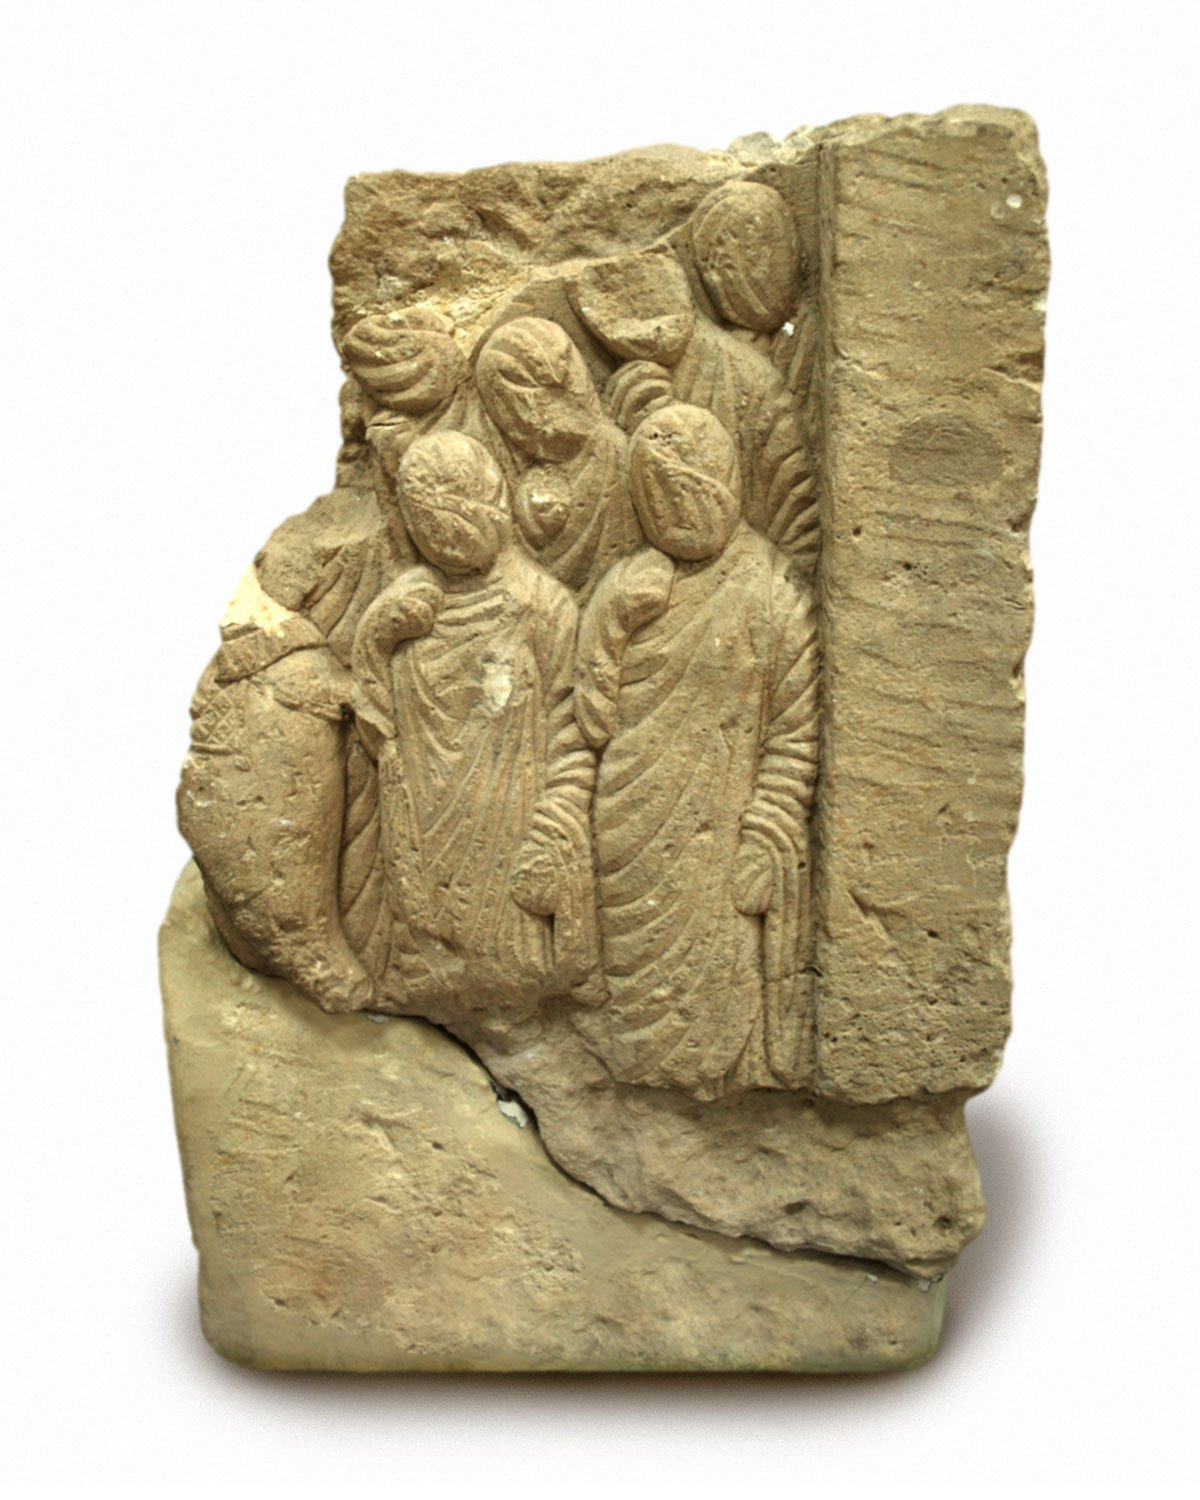 Part of a base relief, depicting a processional scene.